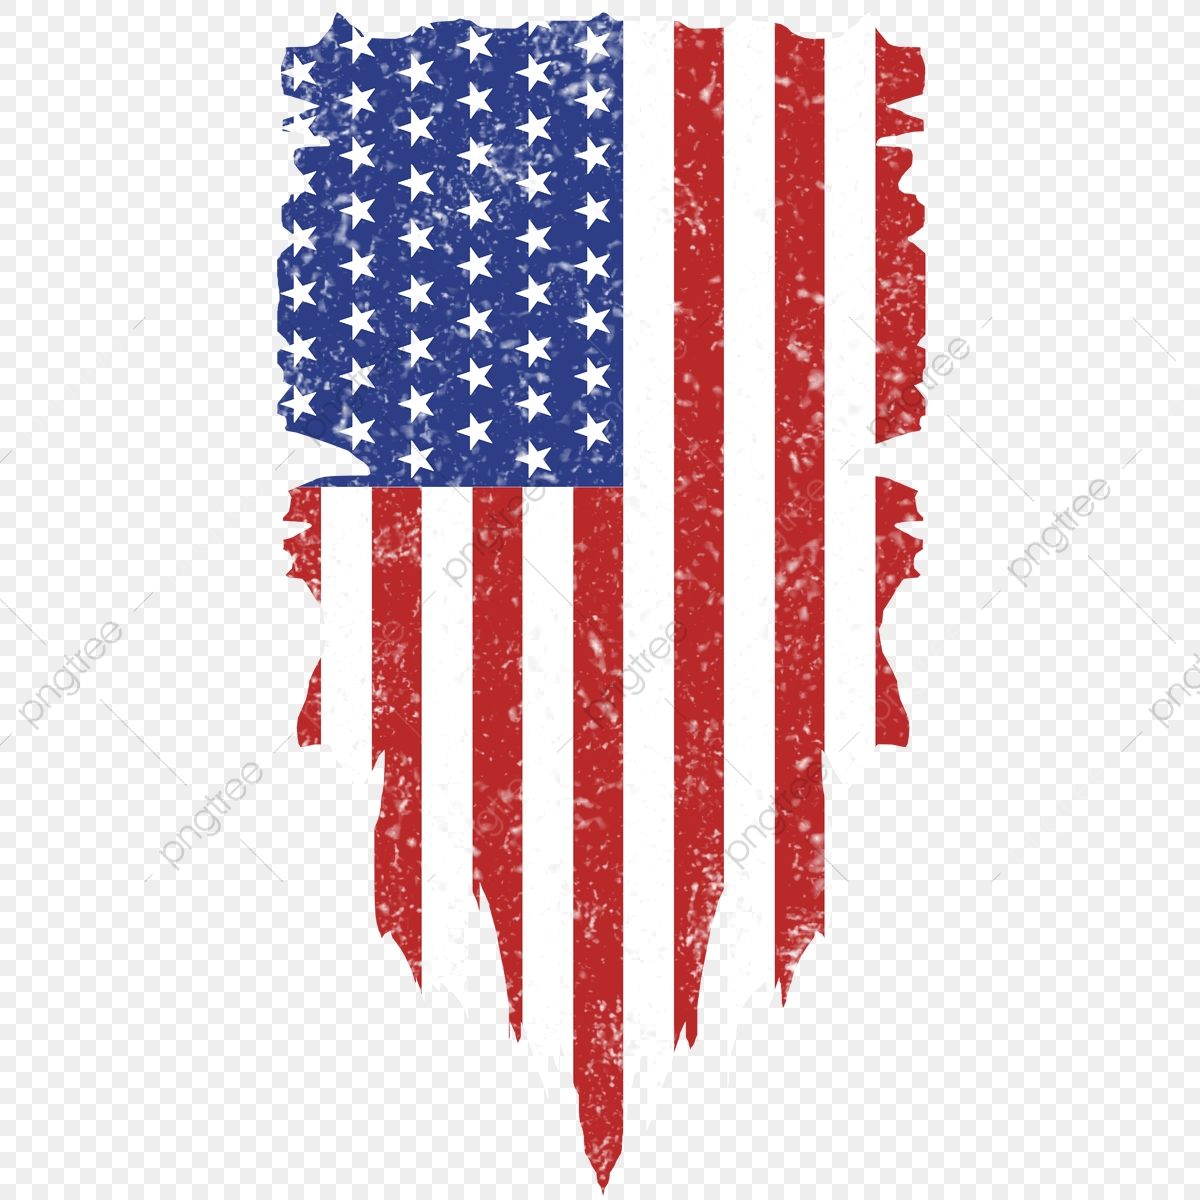 Usa Flag Png America Flag Png Usa Flag America Flag Flag Usa Png Transparent Clipart Image And Psd File For Free Download